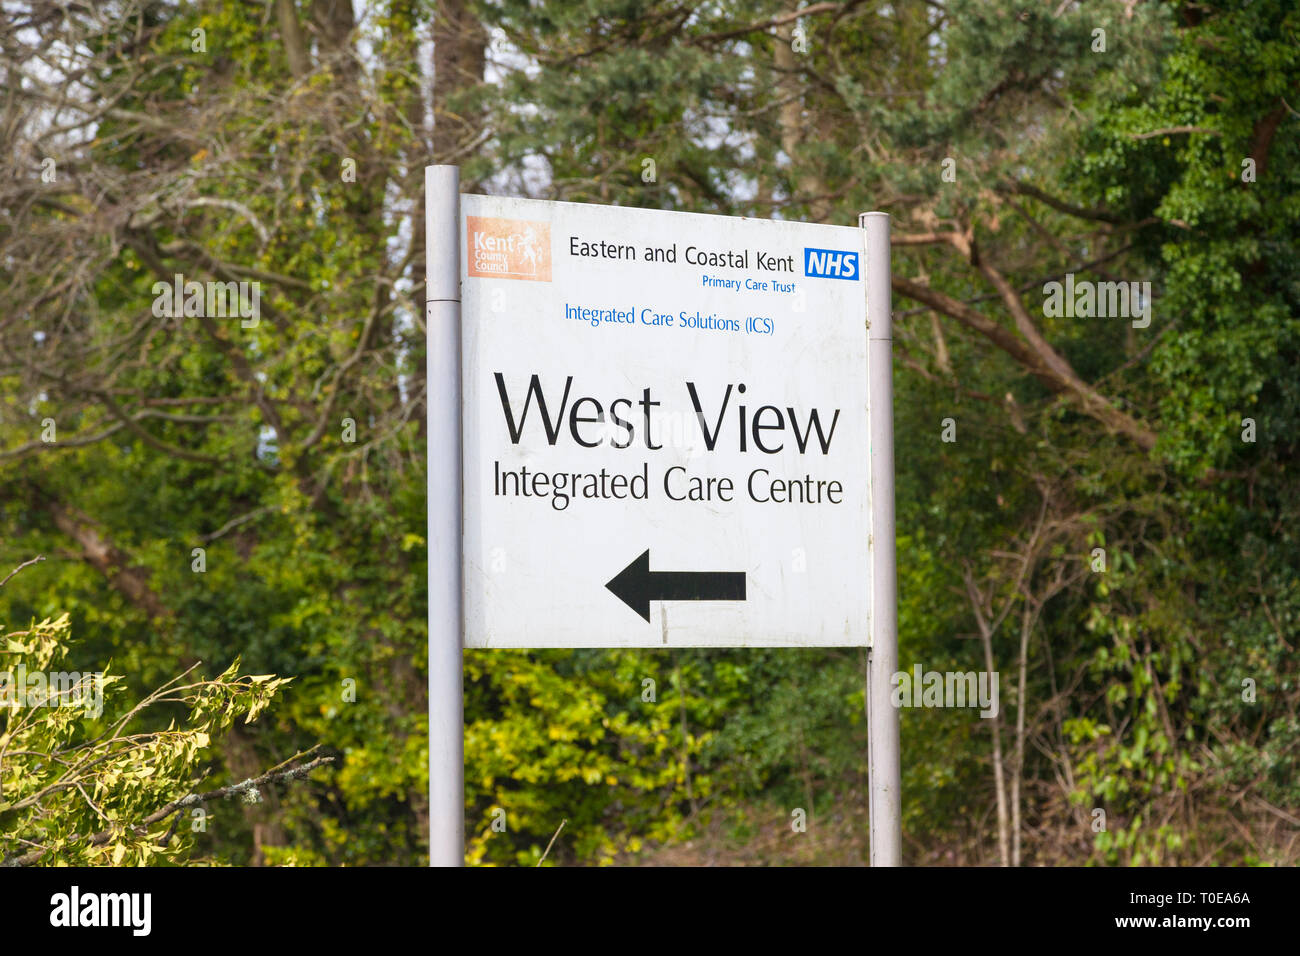 Sign for NHS west view, integrated care centre, tenterden, kent, uk - Stock Image